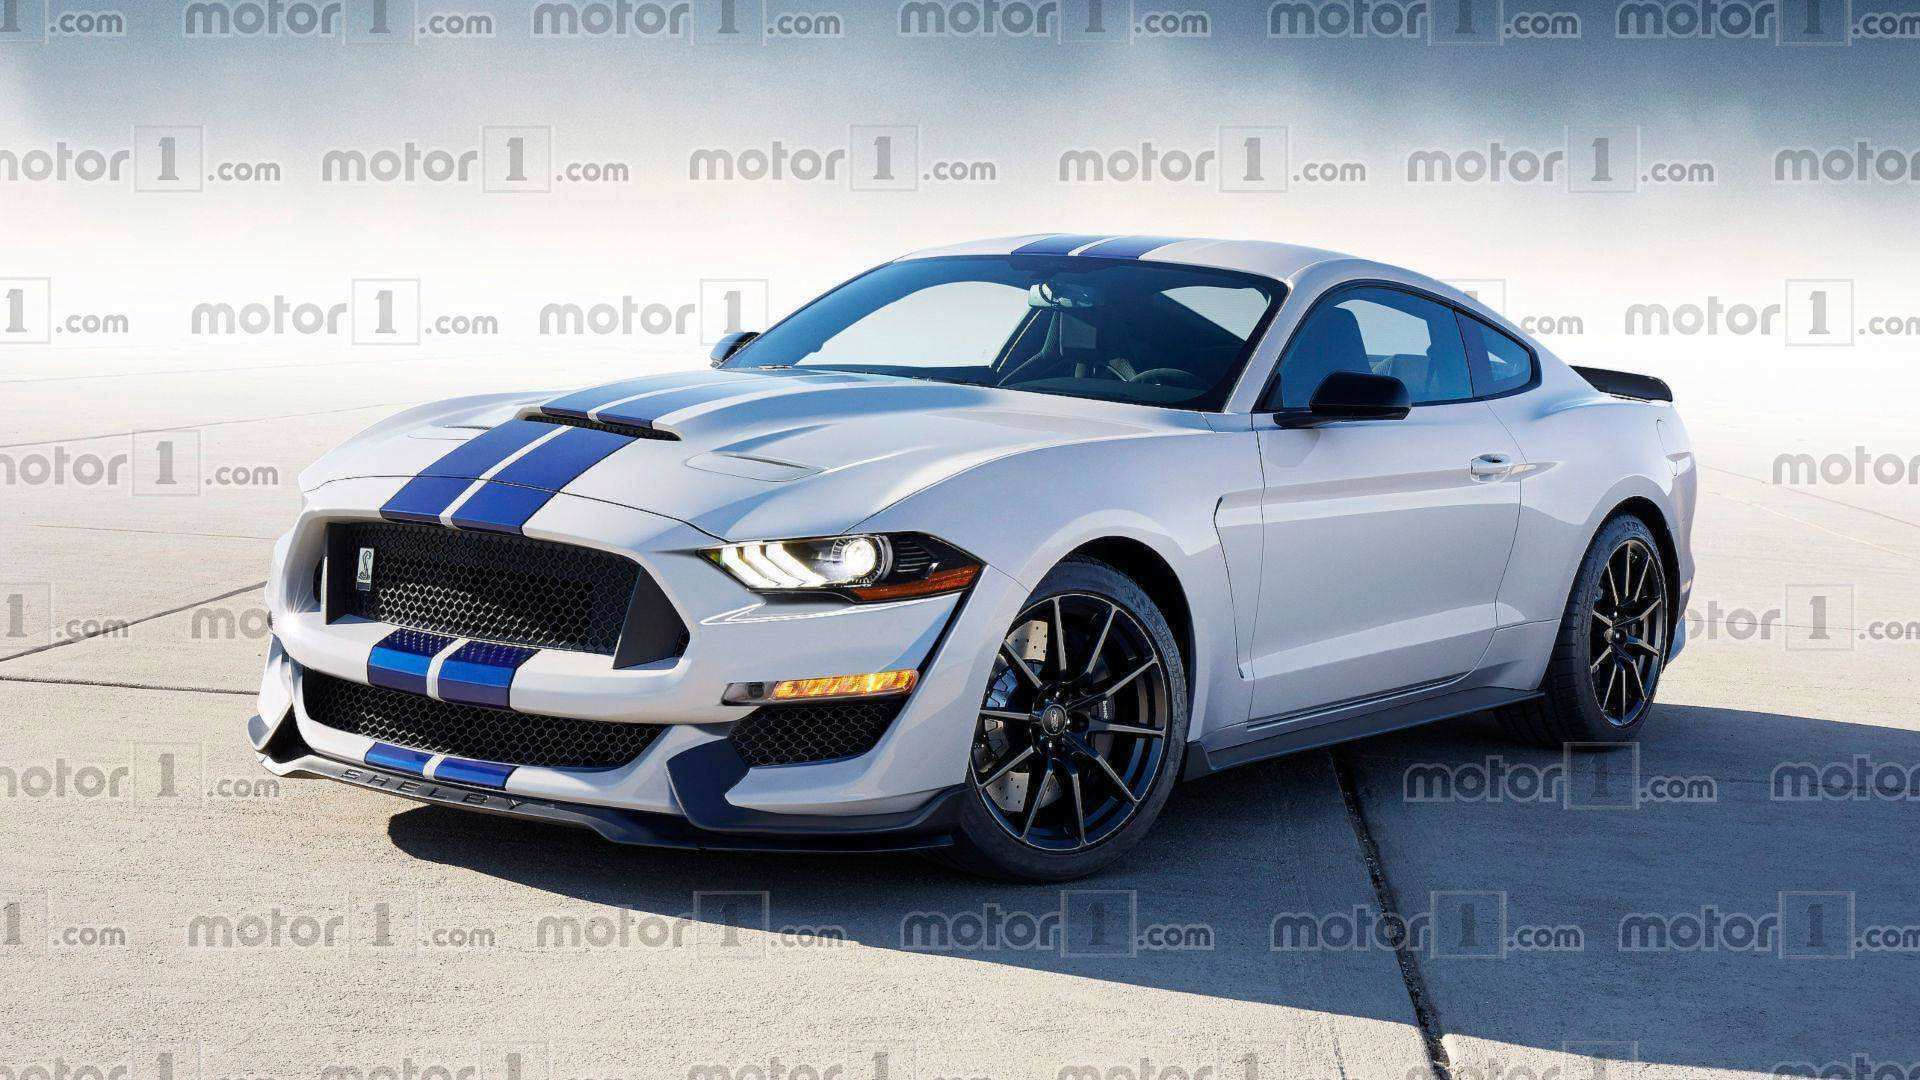 47 New 2020 The Spy Shots Ford Mustang Svt Gt 500 Style